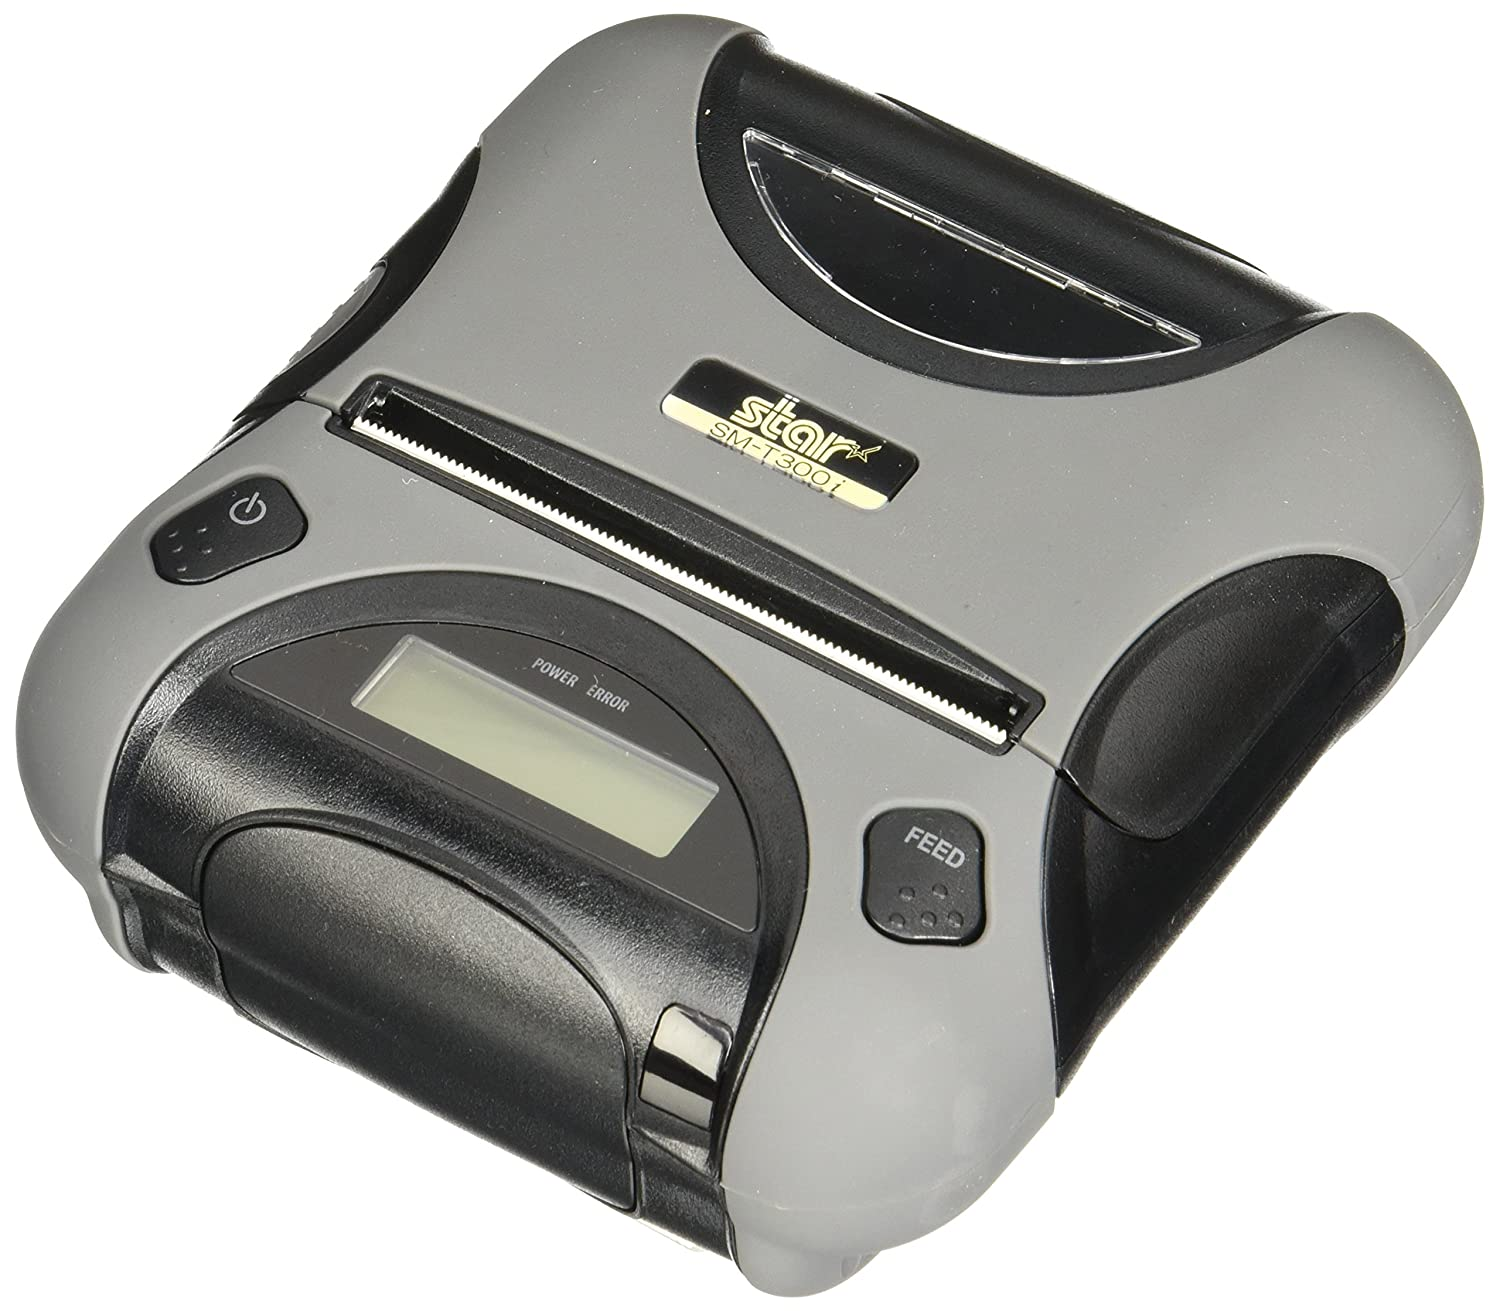 Rugged, dust-protected and splash-proof portable 3-inch thermal receipt printer with Bluetooth 2.1 connectivity and long battery life